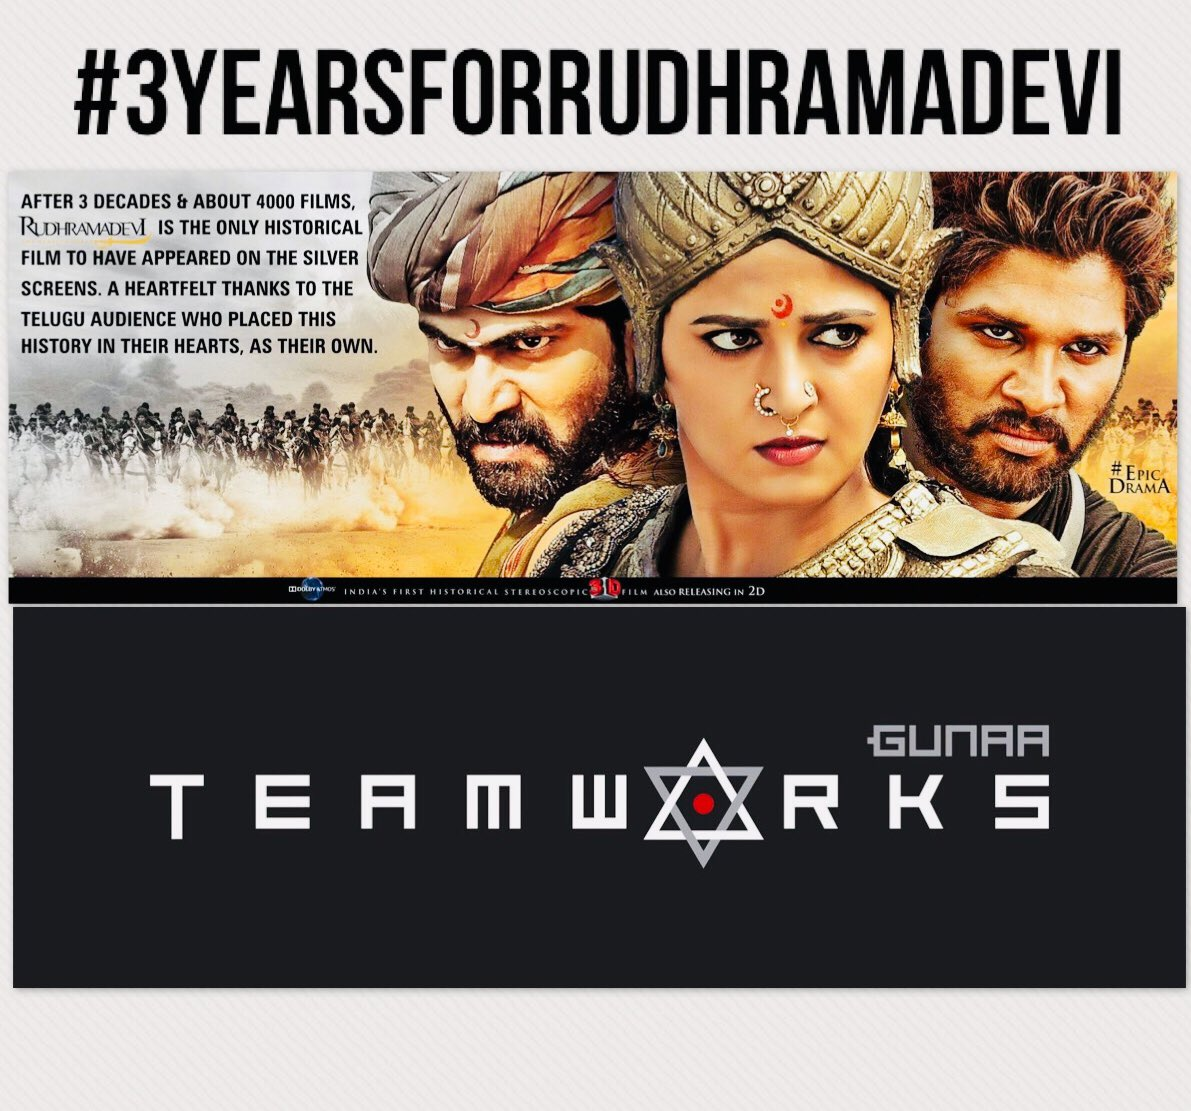 Oct 9th Marks 3 years for Rudhramadevi! We thank all the audiences and fans for their love!